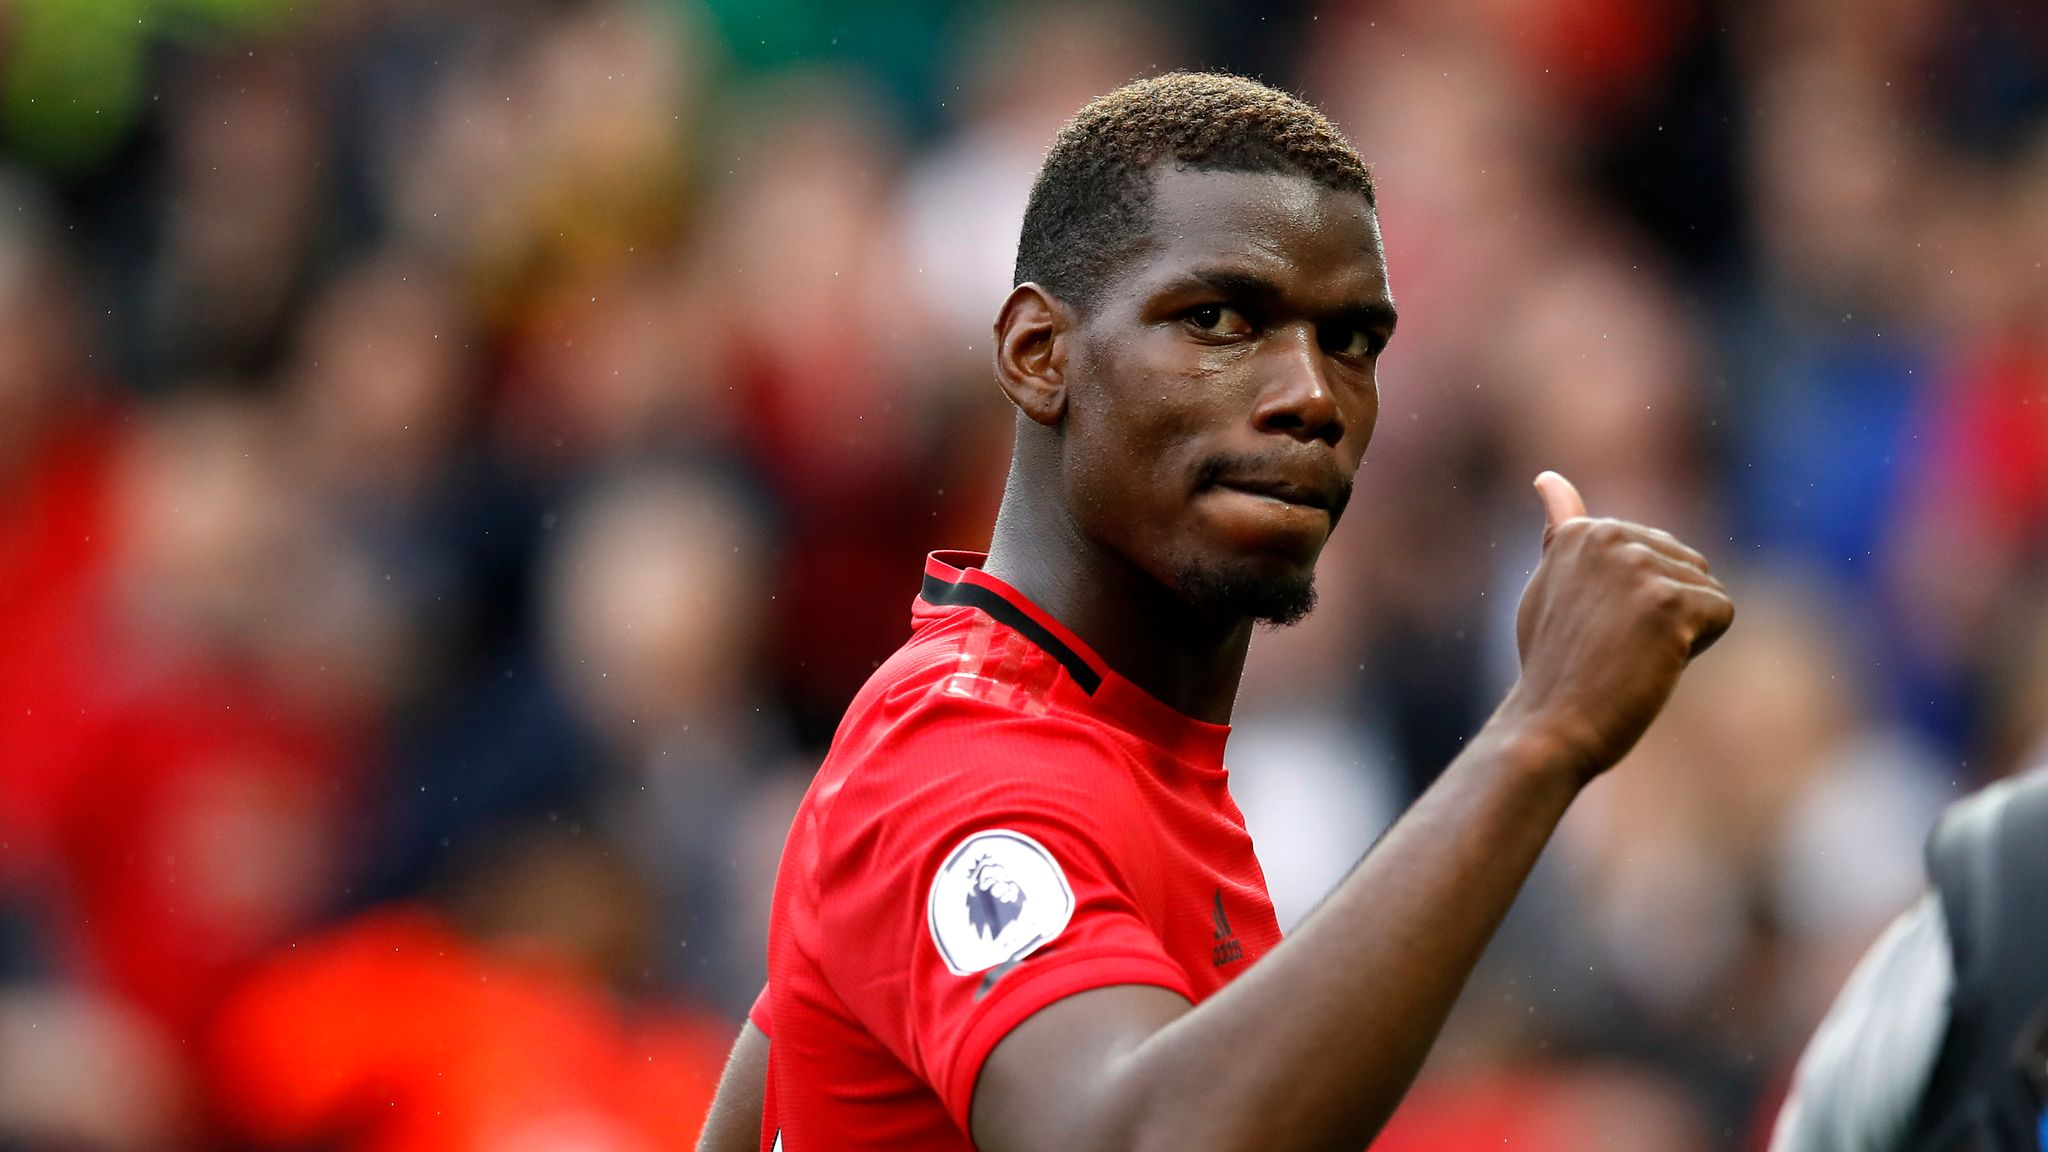 Paul Pogba says there are 'big question marks' over his Manchester United future